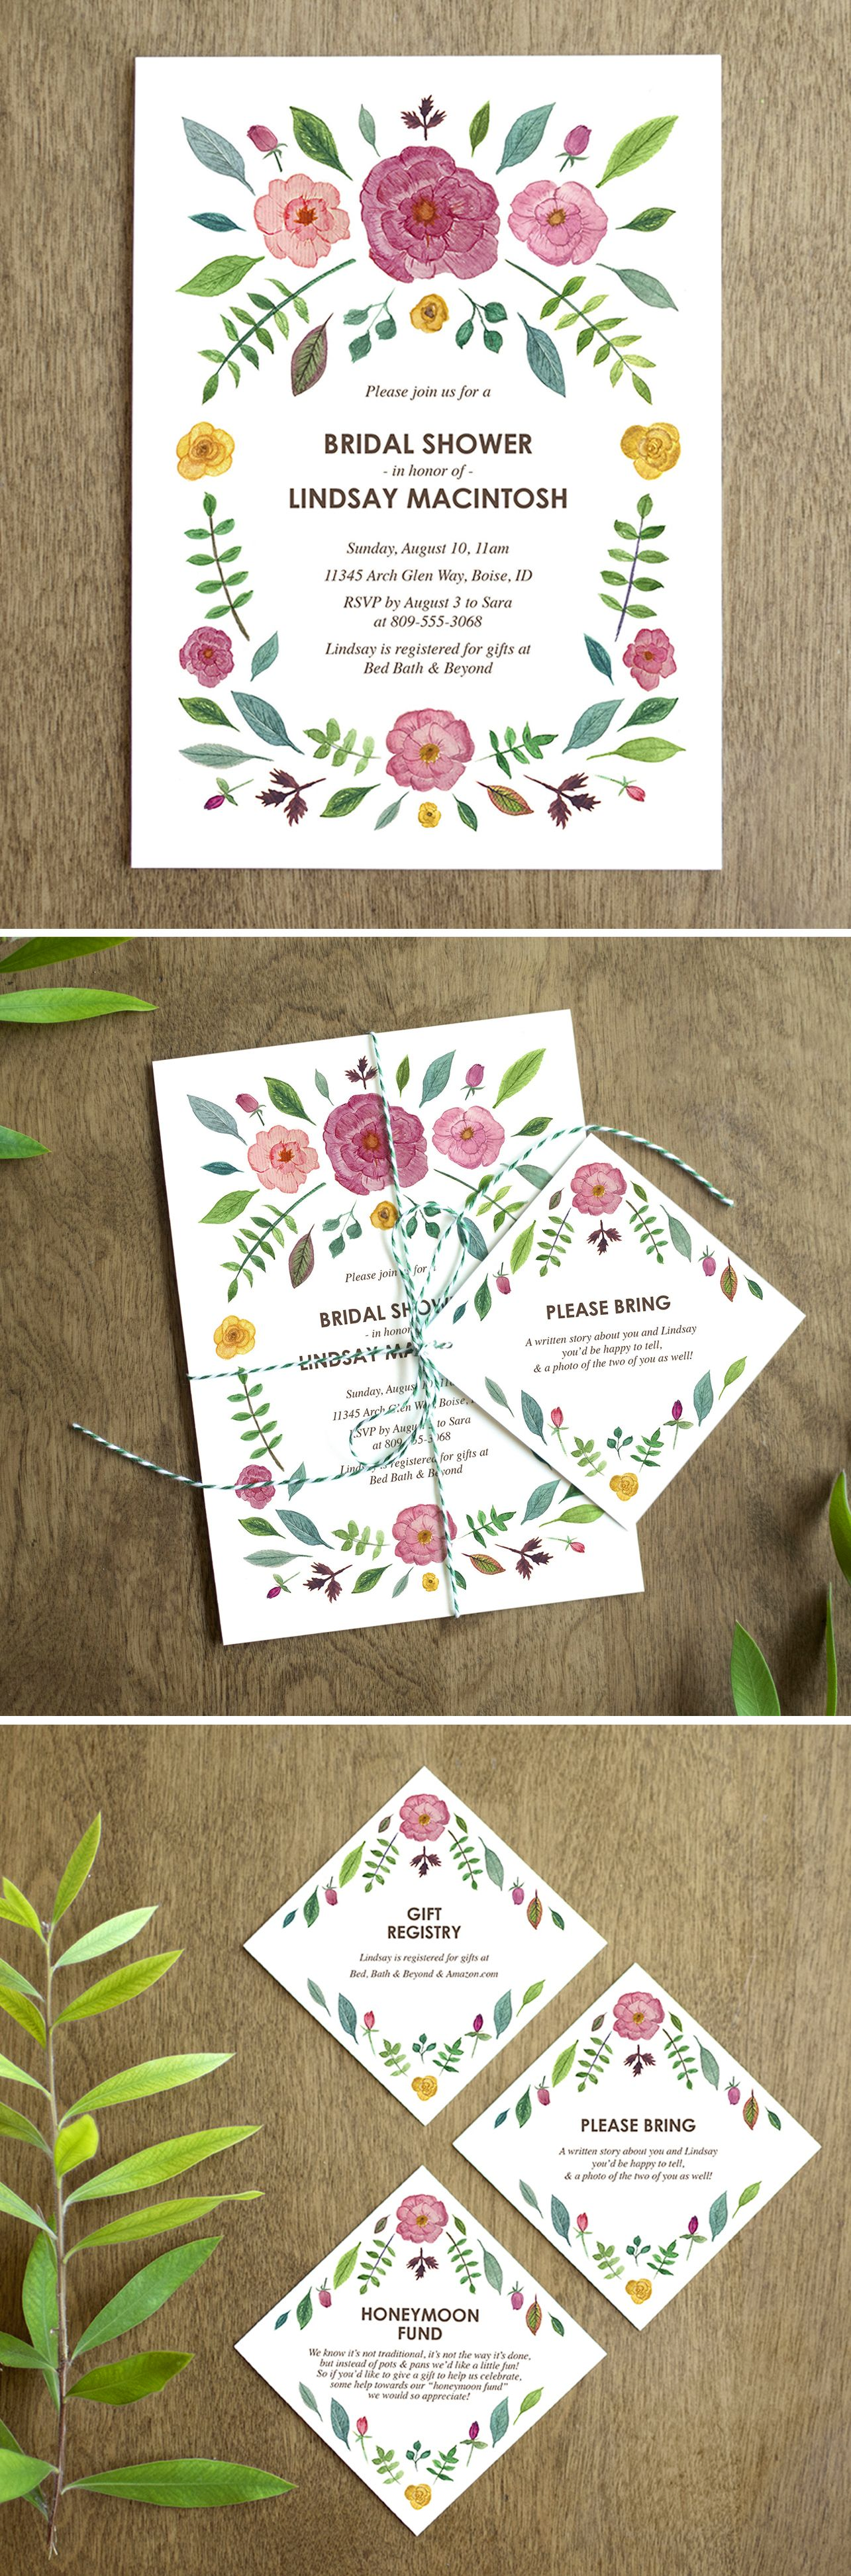 Botanical garden bridal shower invitation with watercolor florals